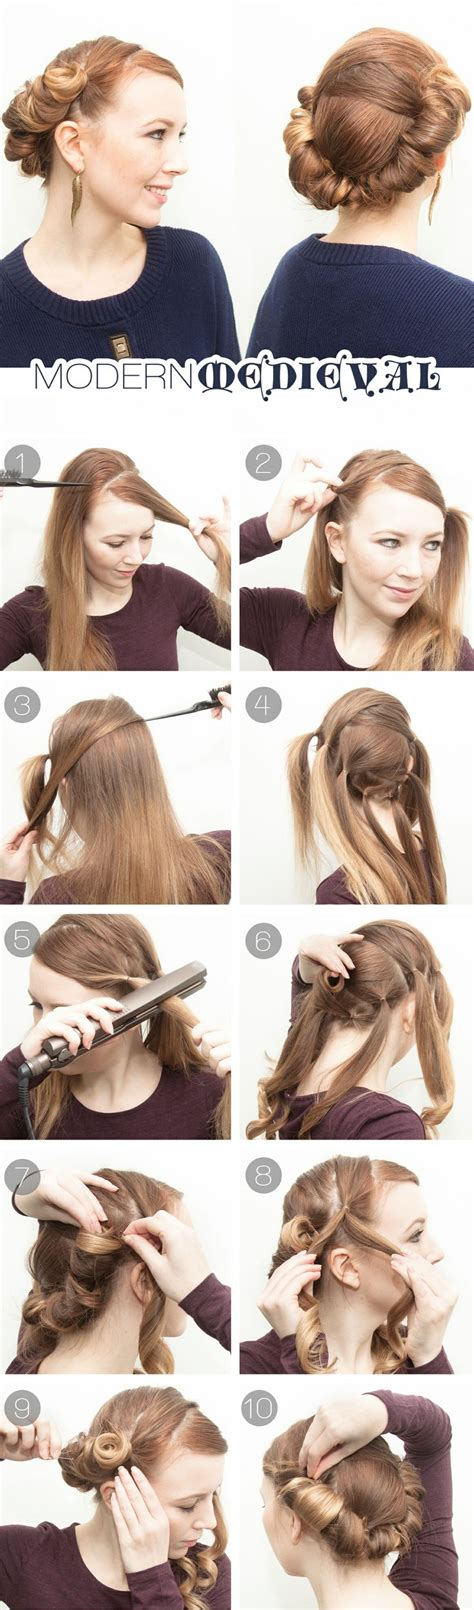 cute hairstyles you can do with a straightener 9 genius hairstyles you can do with a flat iron